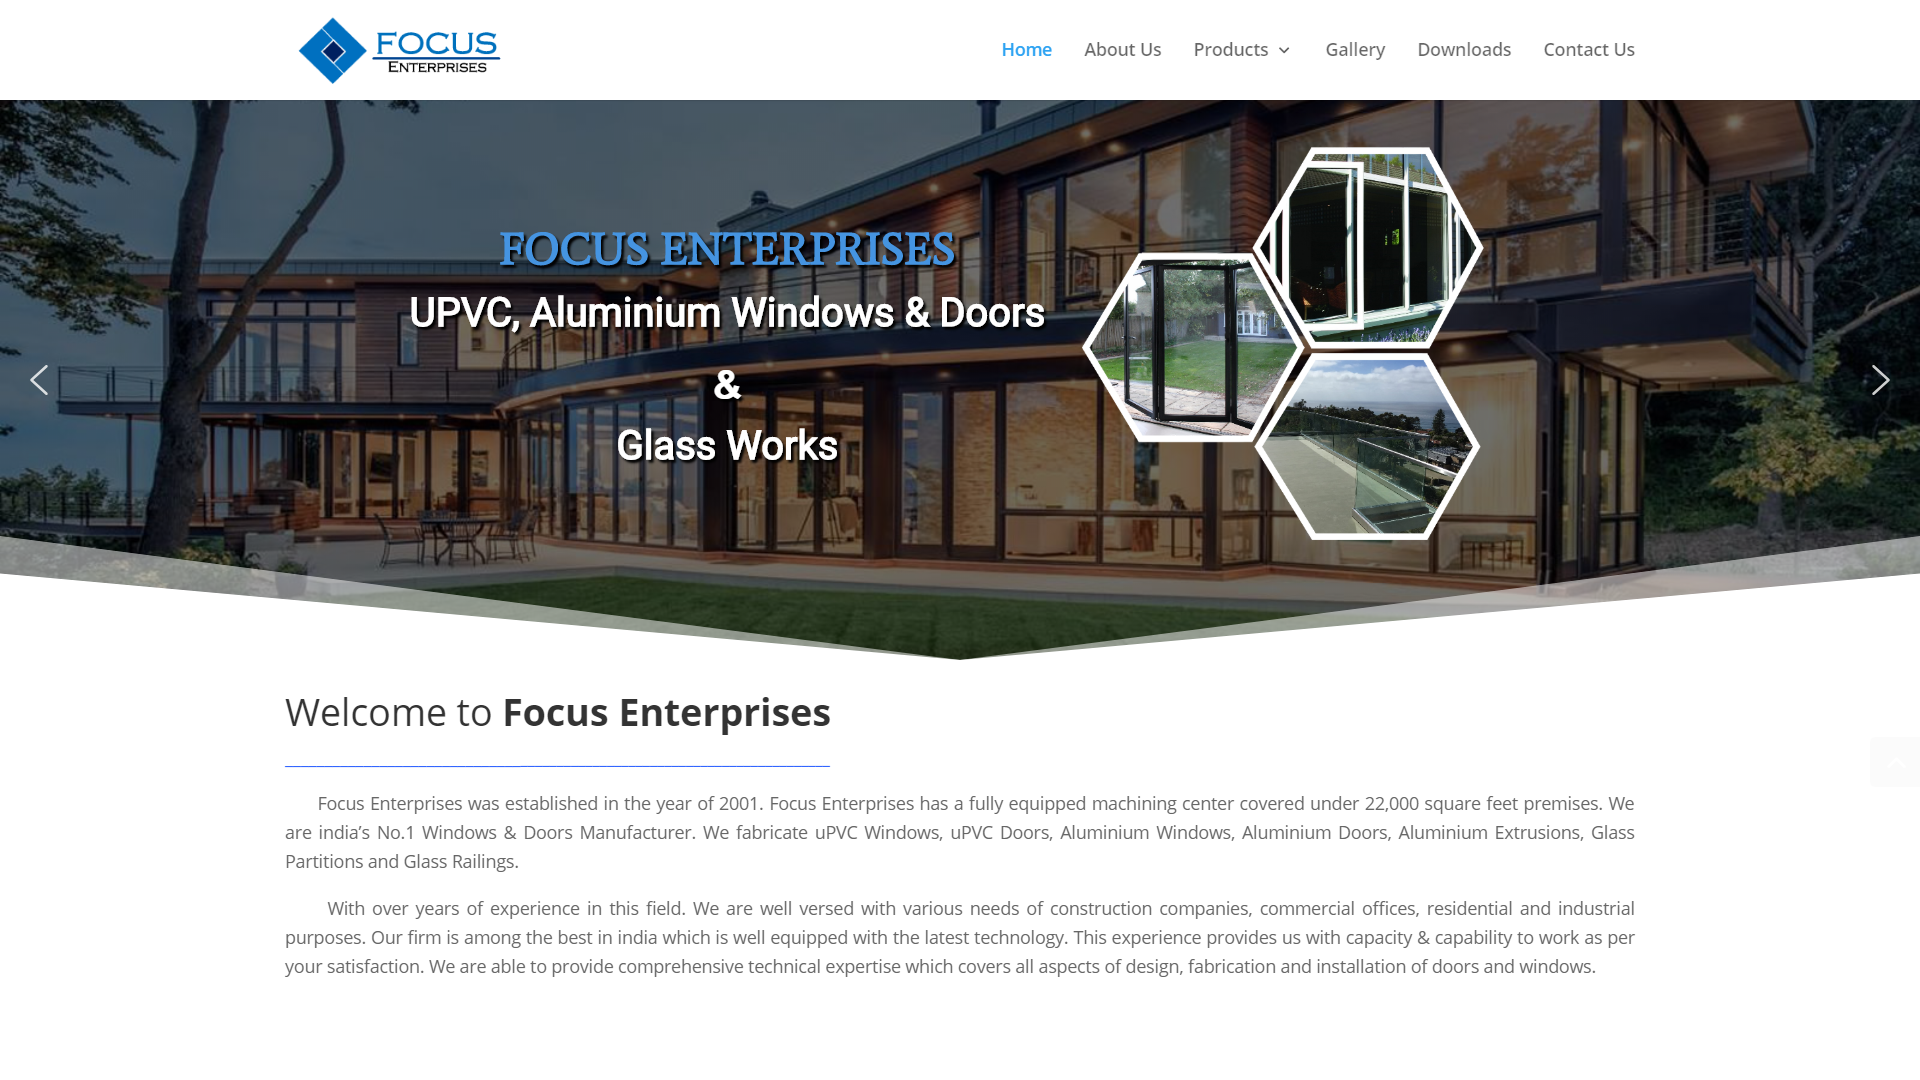 Focus Enterprises